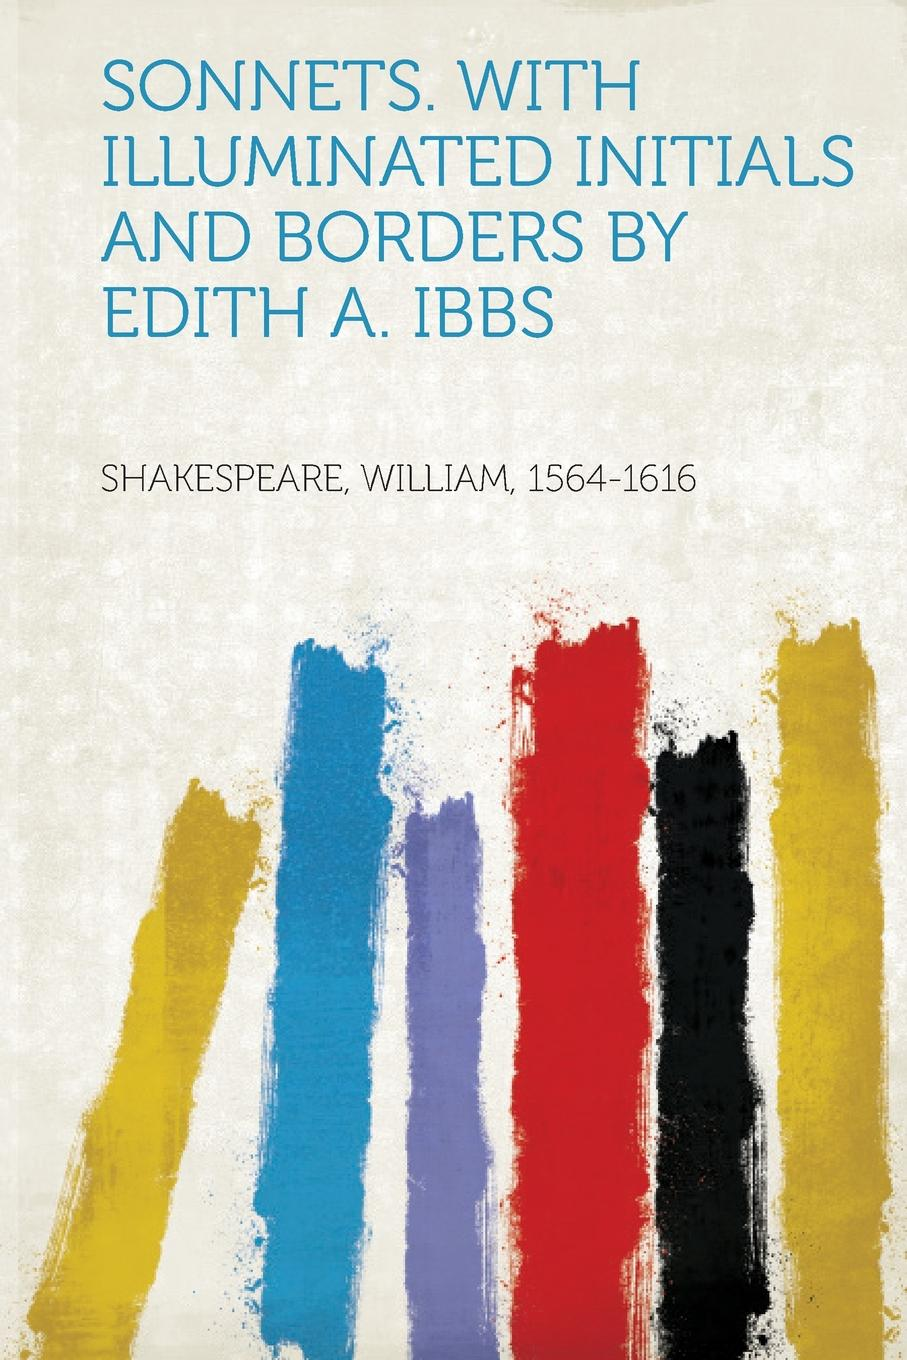 William Shakespeare Sonnets. with Illuminated Initials and Borders by Edith A. Ibbs